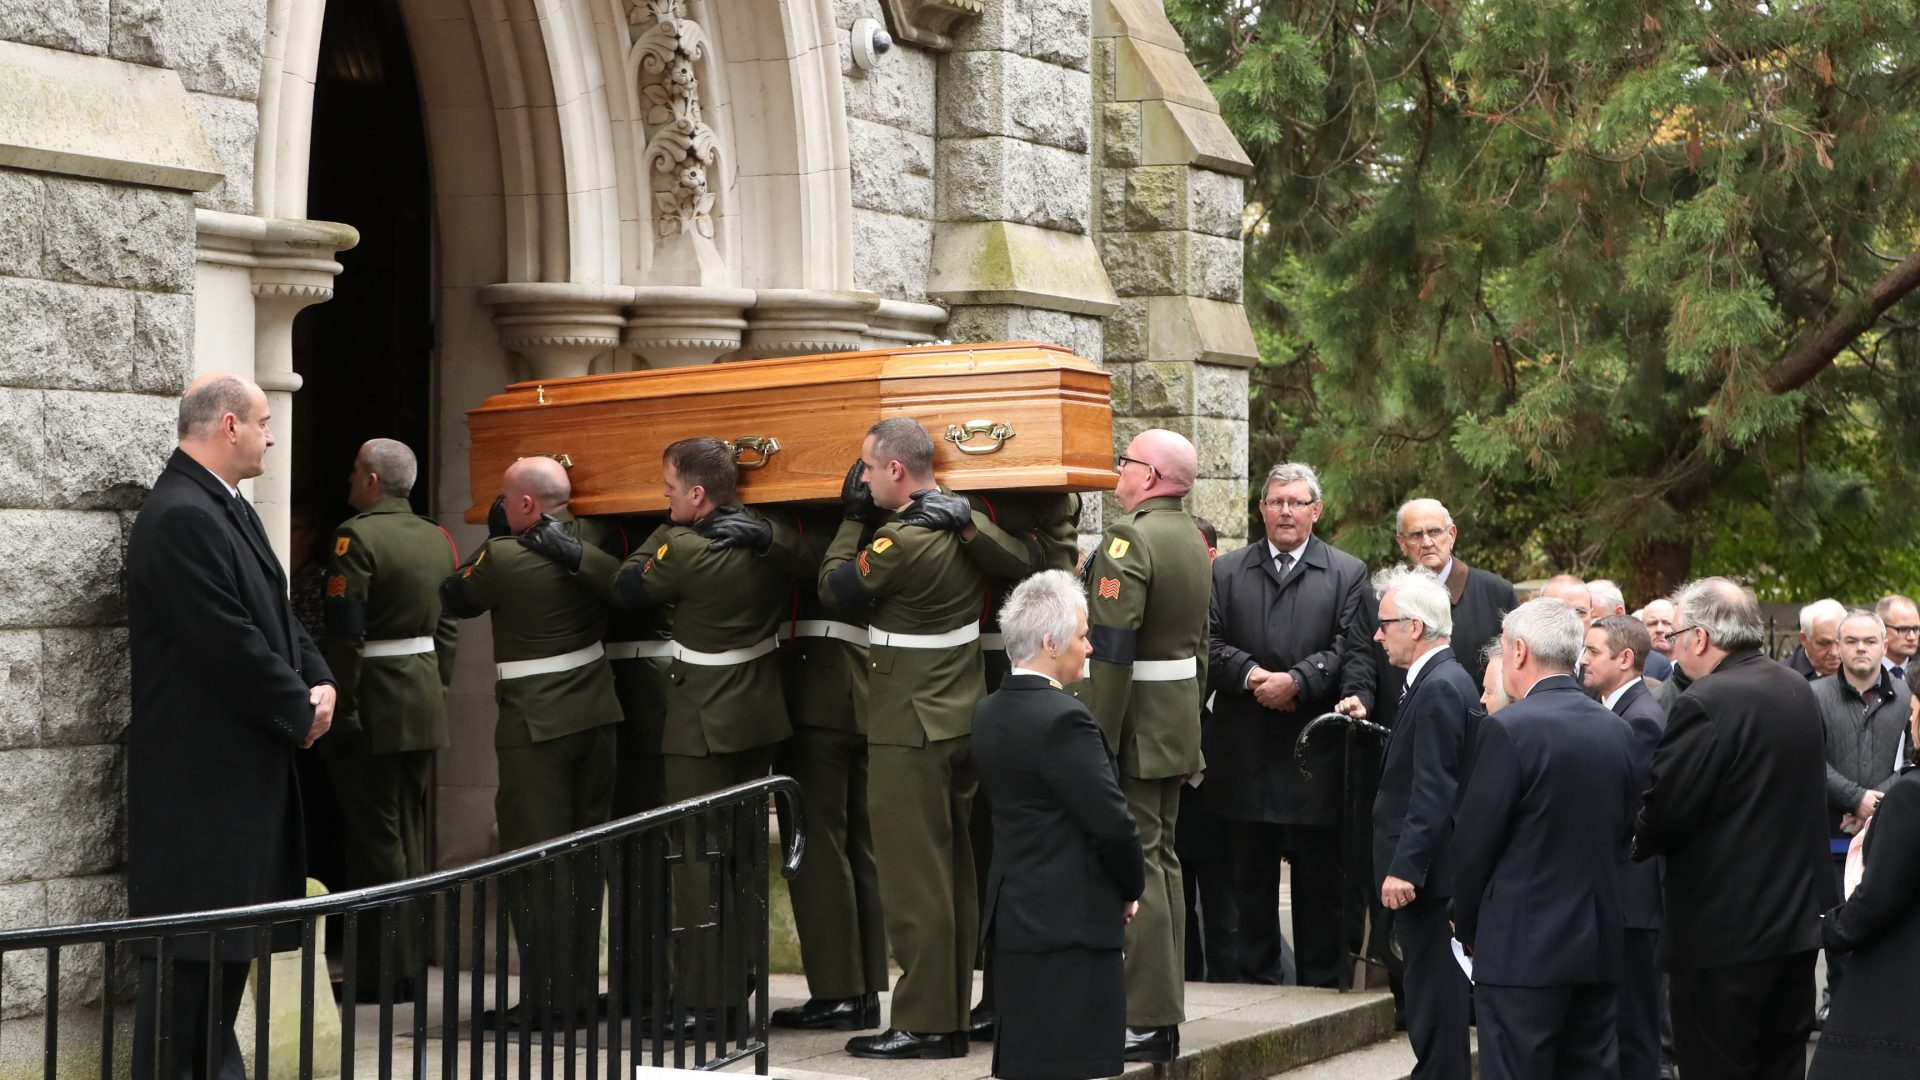 The coffin of Liam Cosgrave is carried into the Church of the Annunciation in Dublin, for his funeral service